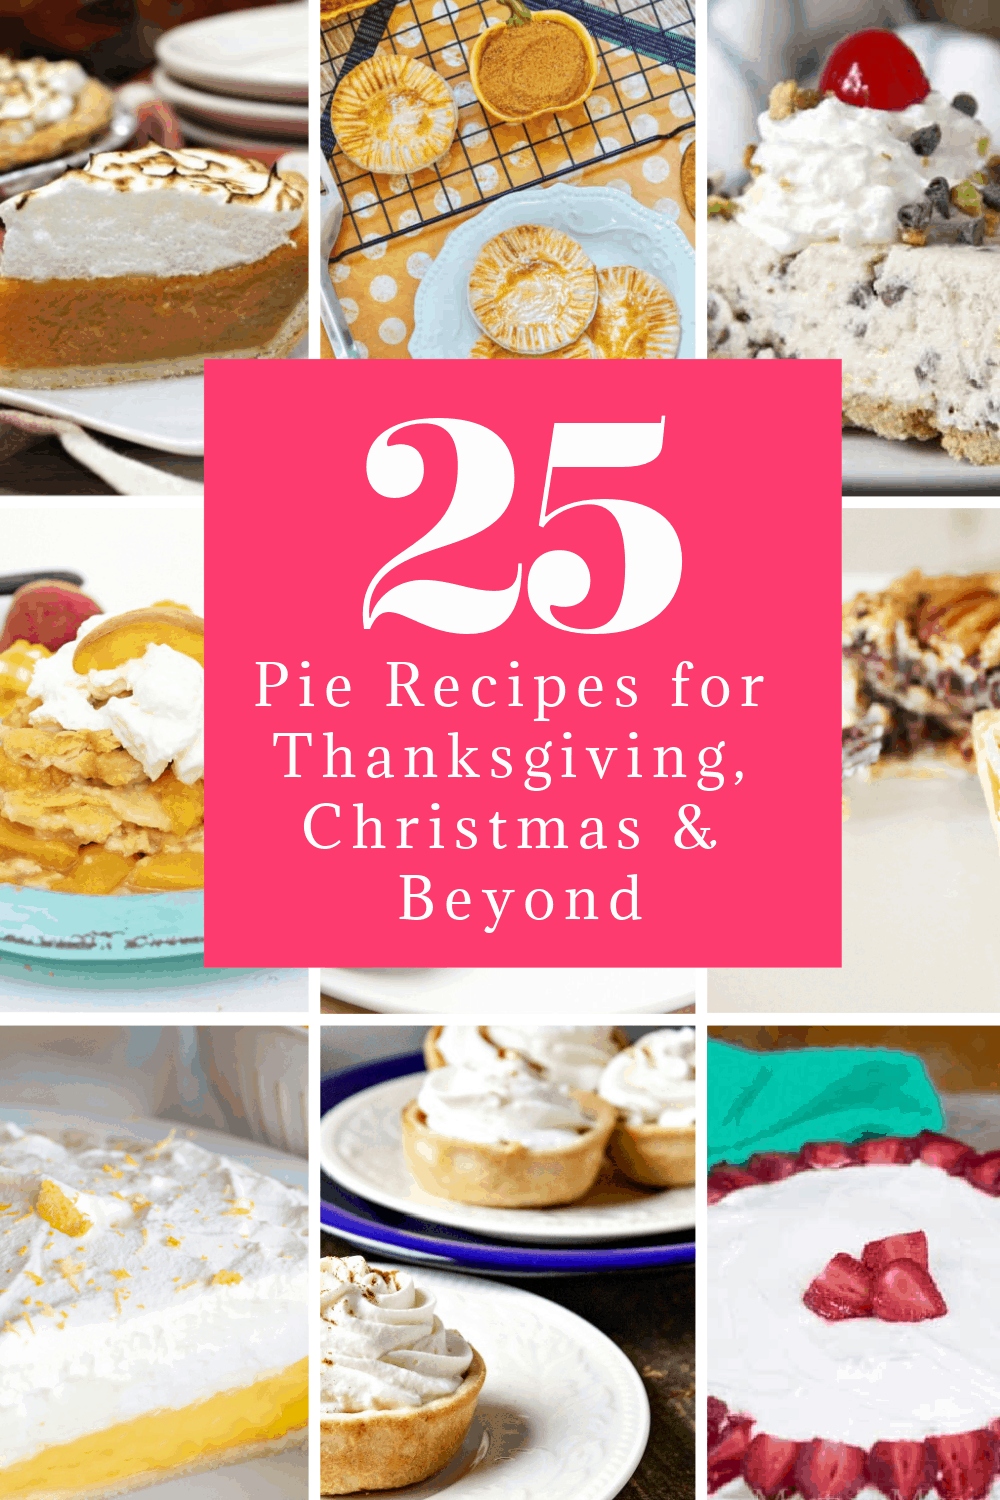 Looking for some tasty pie recipes to make for Thanksgiving, Christmas, or even as a fun dessert on a random weeknight? These 25 yummy ideas will have your mouth watering in no time!